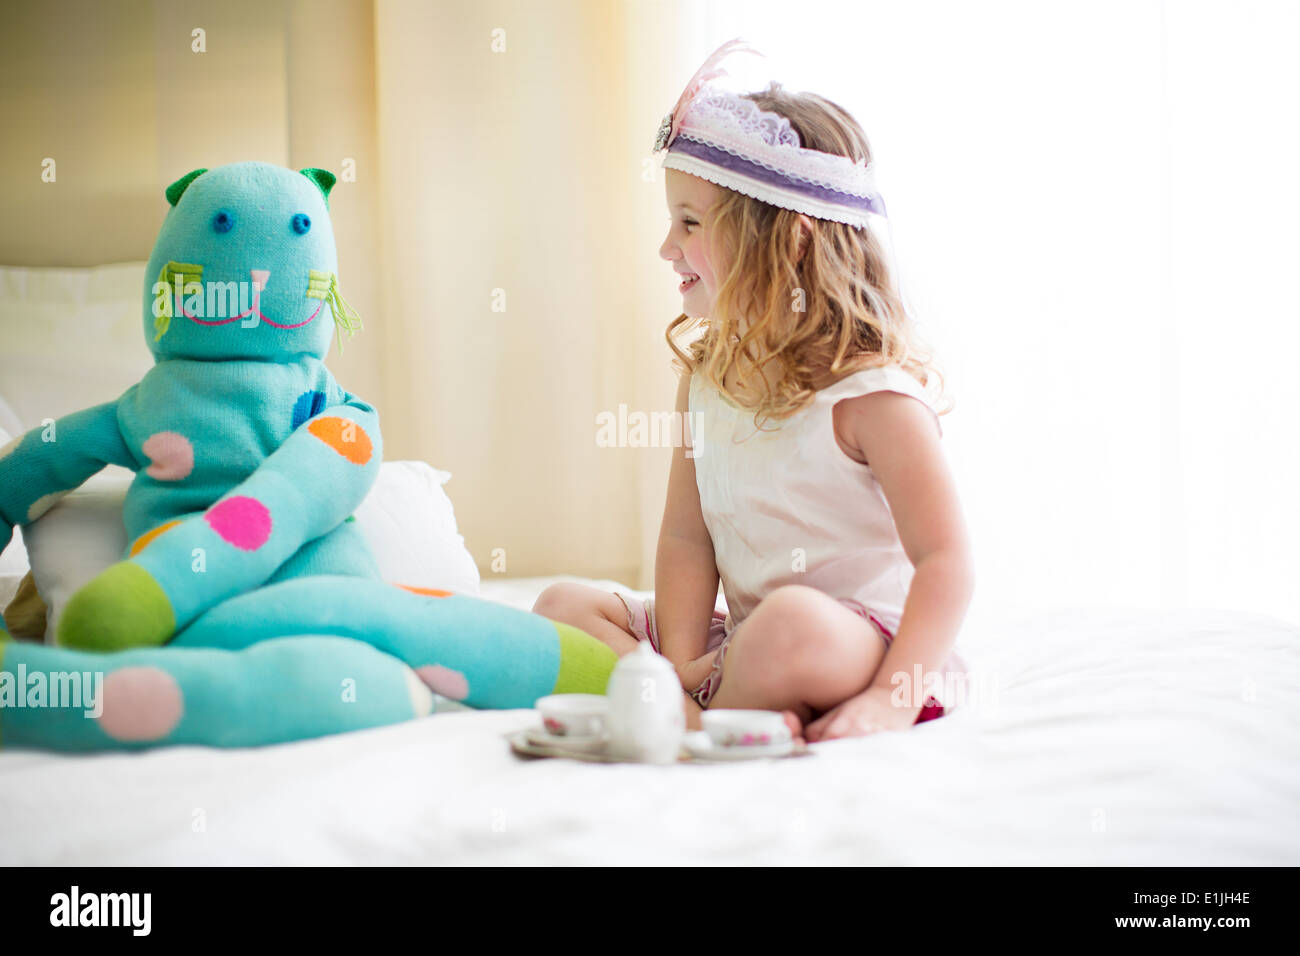 Young girl sharing tea with cuddly toy on bed - Stock Image